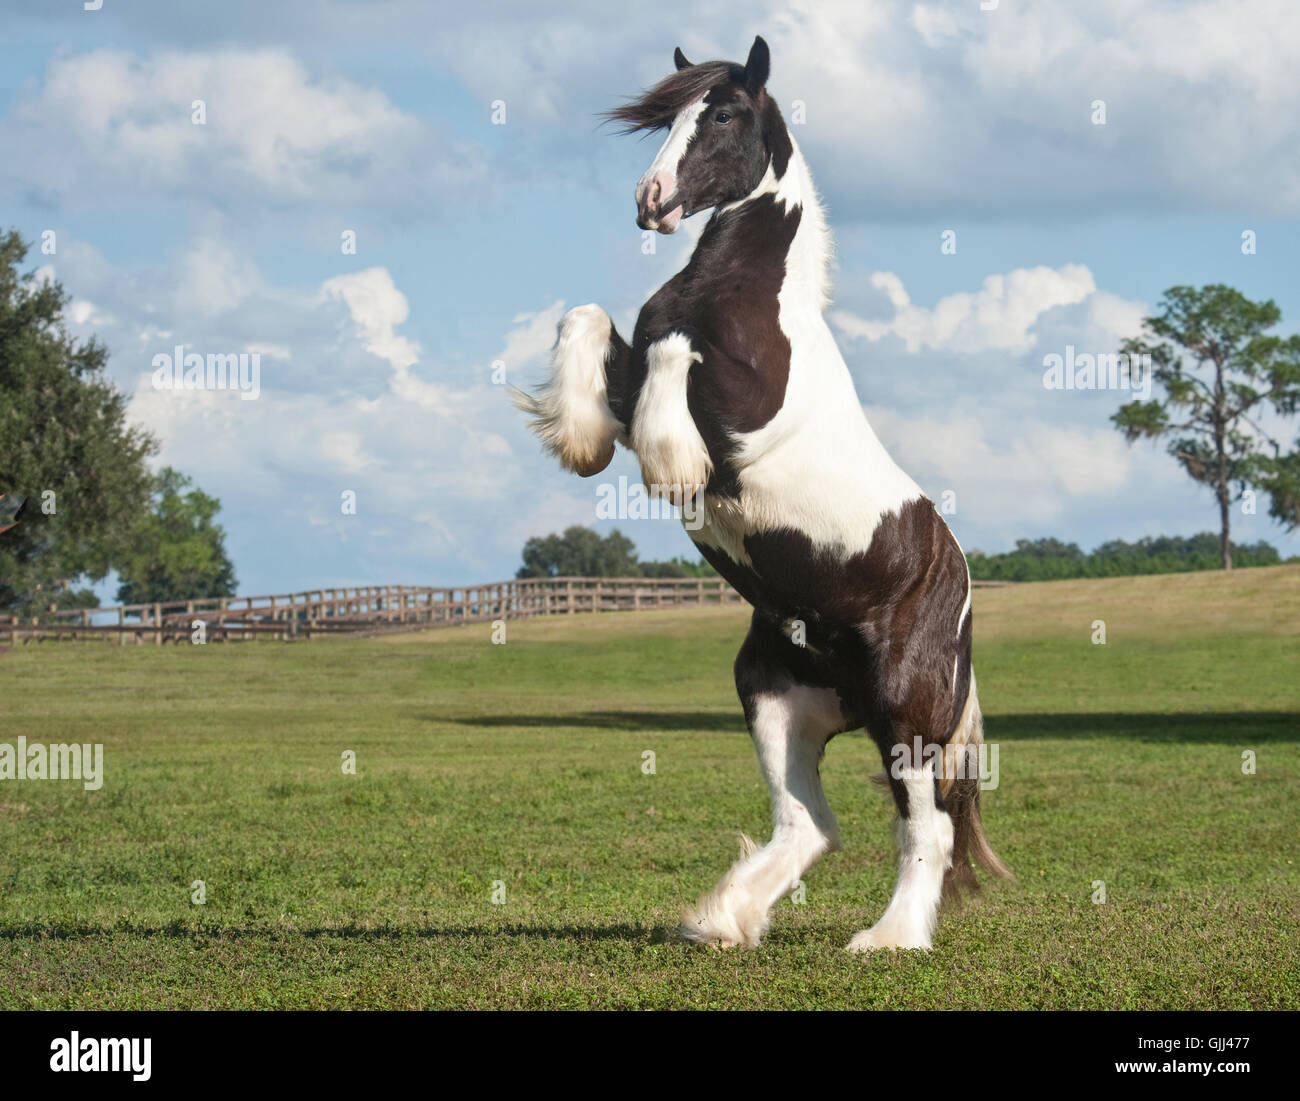 Rearing up Gypsy Vanner Horse filly in grass pasture - Stock Image